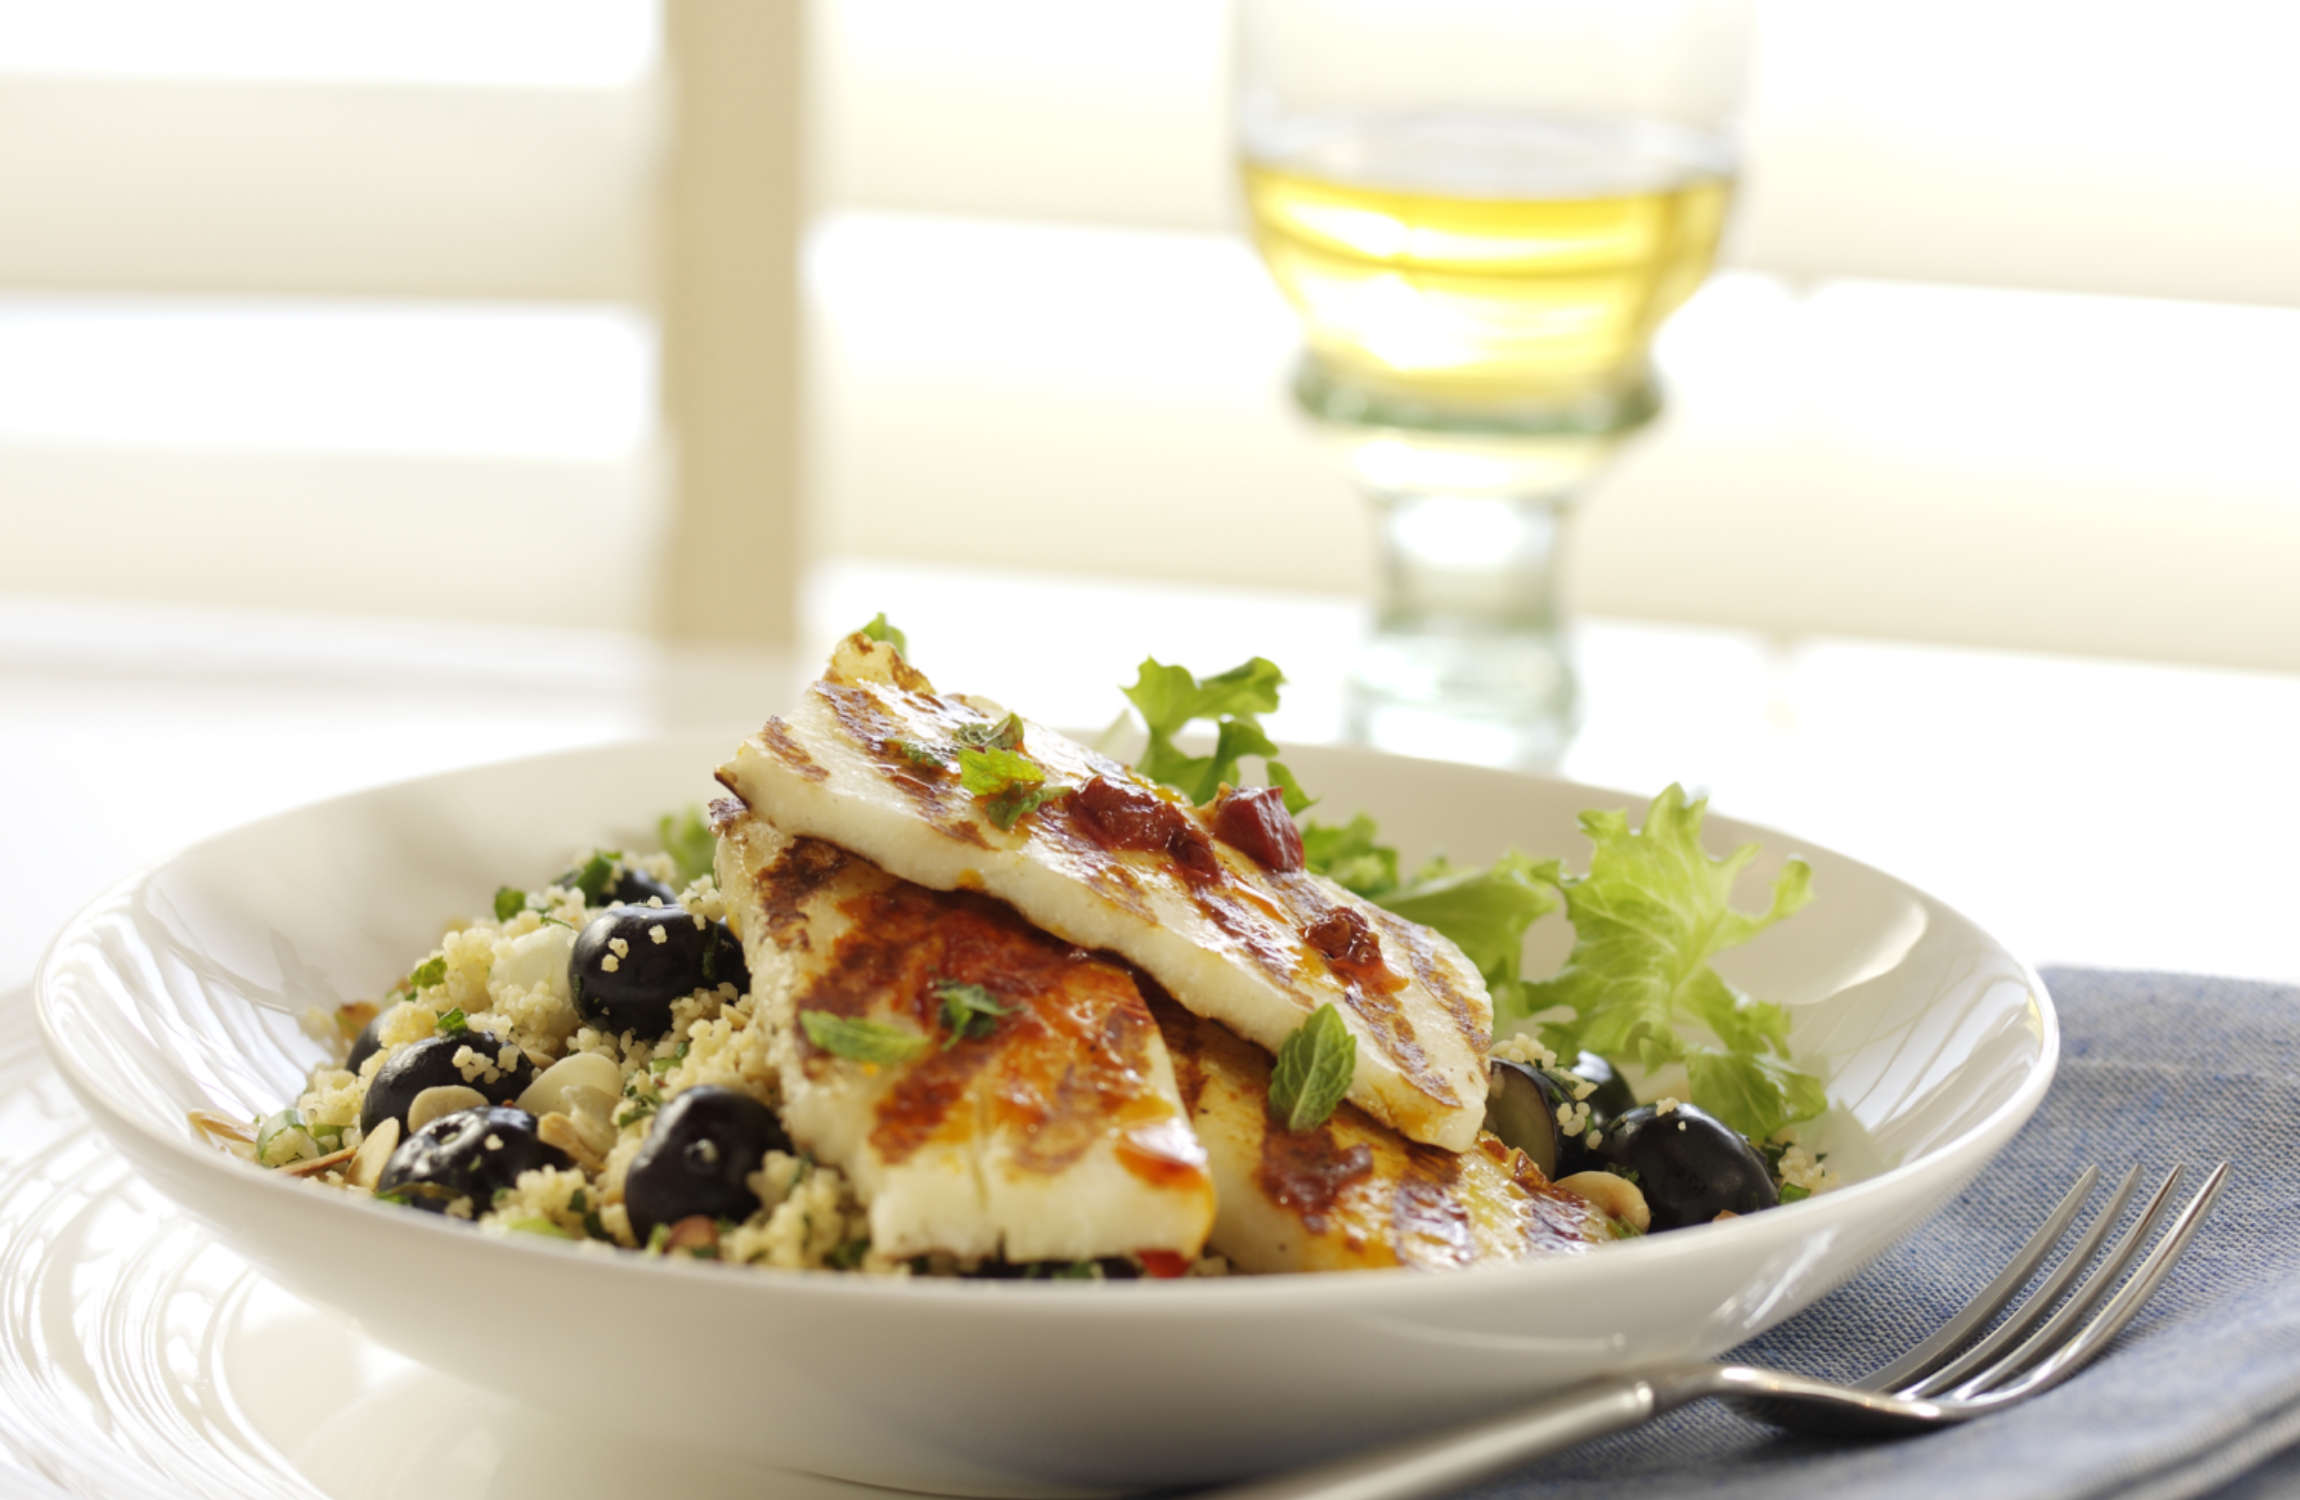 Griddled Halloumi with Blueberry, Spring Onion & Toasted Almond Couscous